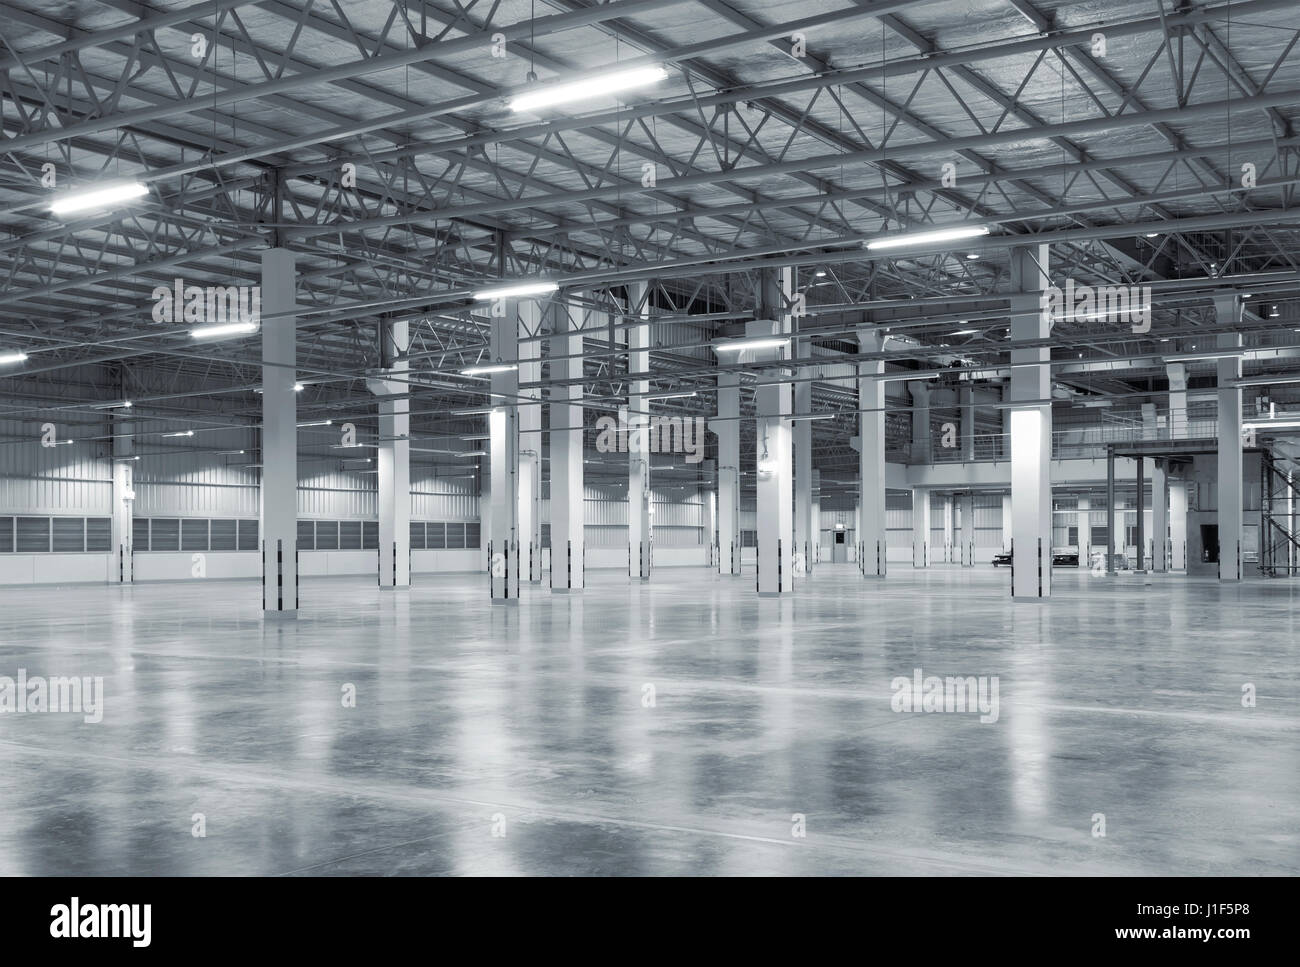 Empty Factory Building Or Warehouse Building With Concrete